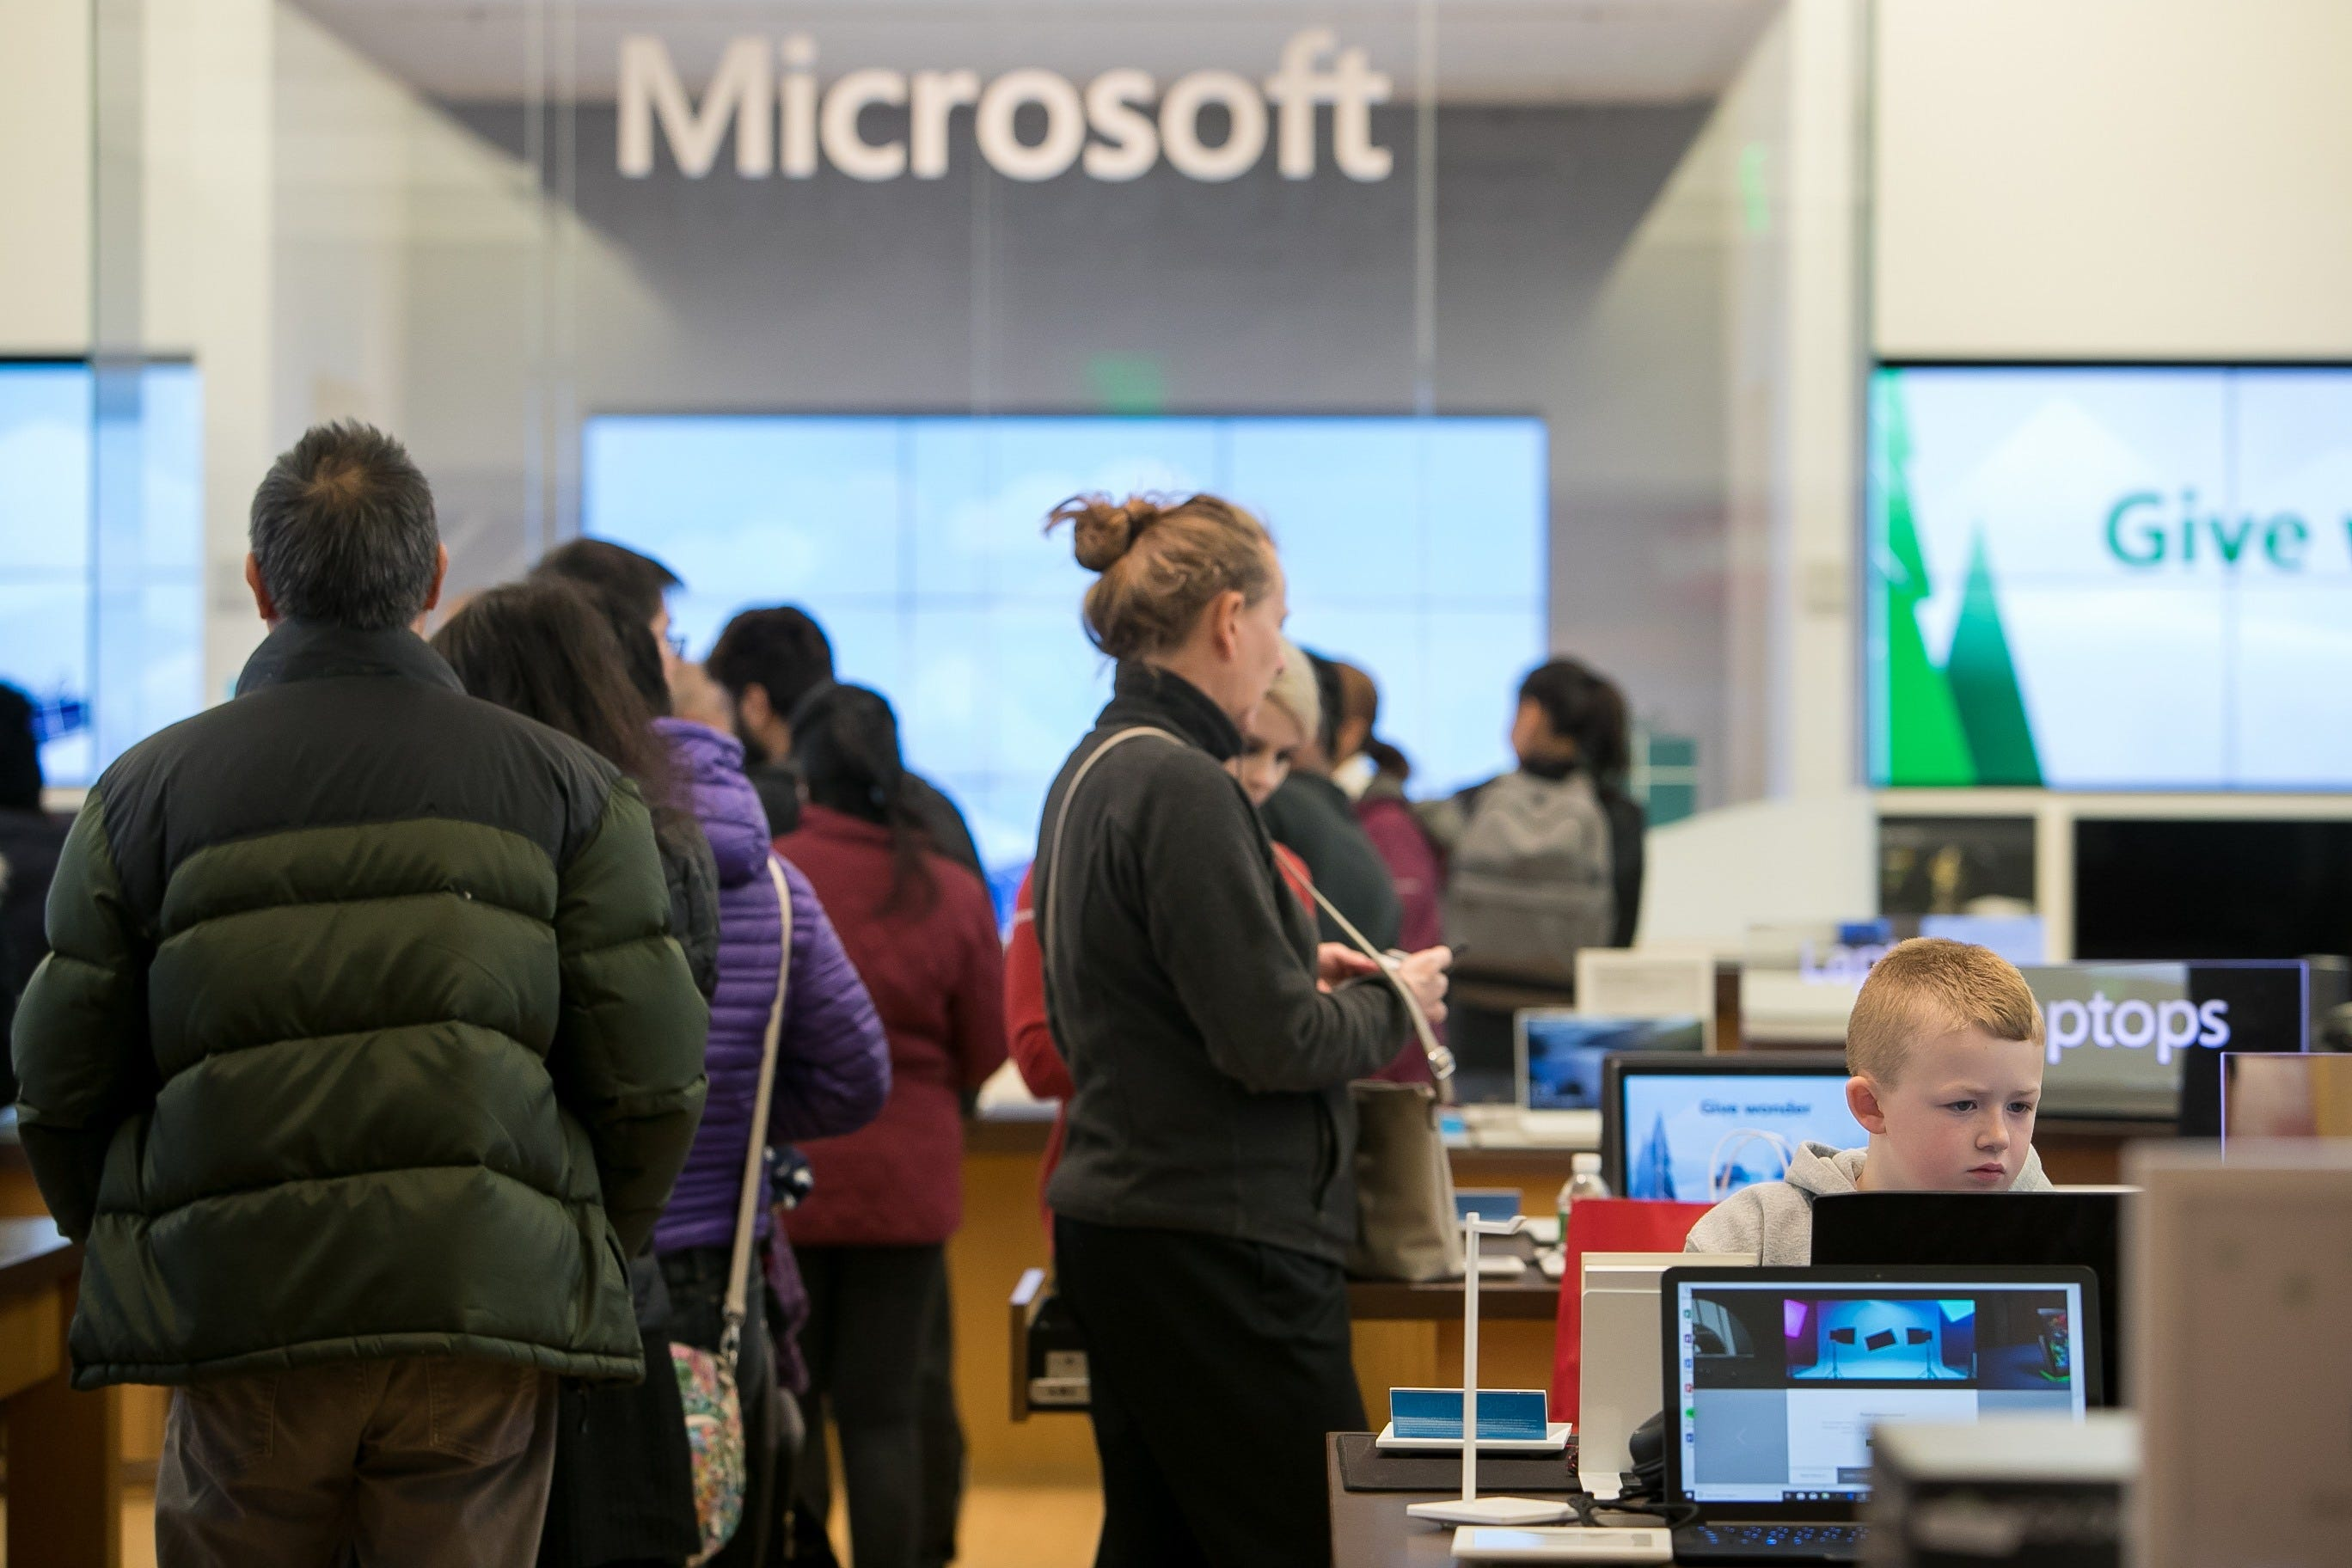 Shoppers look throughout the Microsoft retailer for offers at Christiana Mall on Dark Friday.